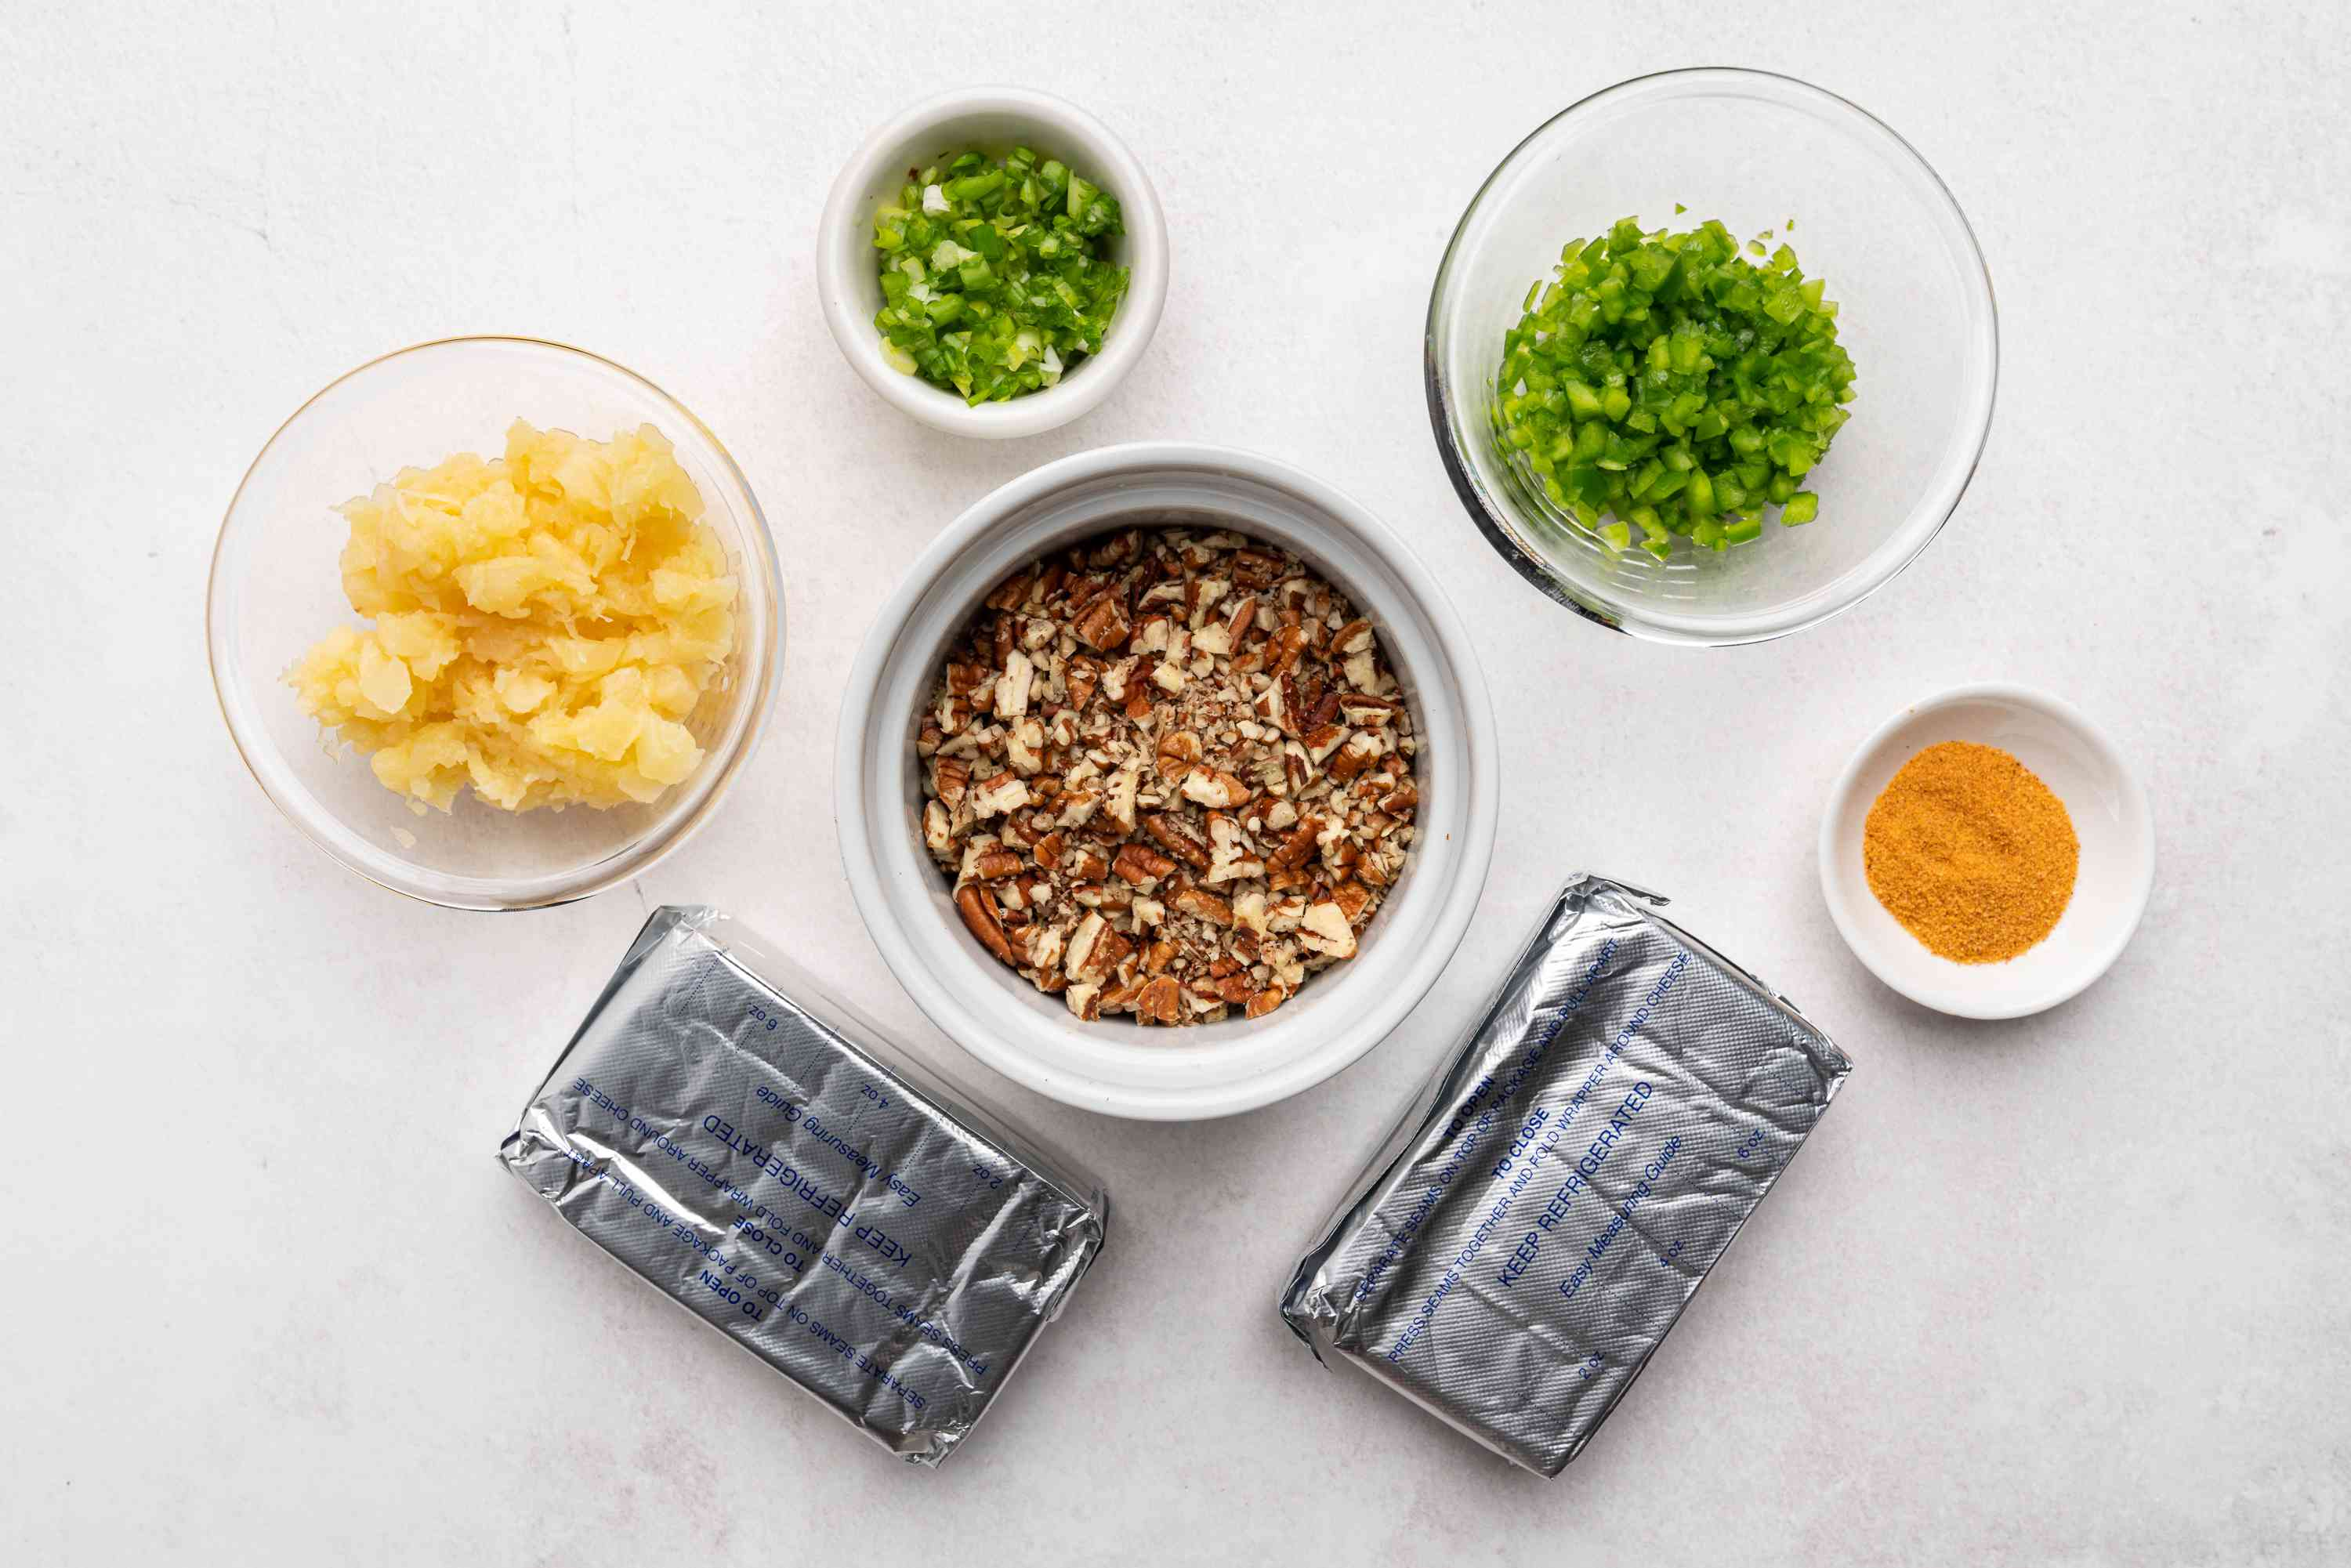 Pineapple Cheese Ball ingredients